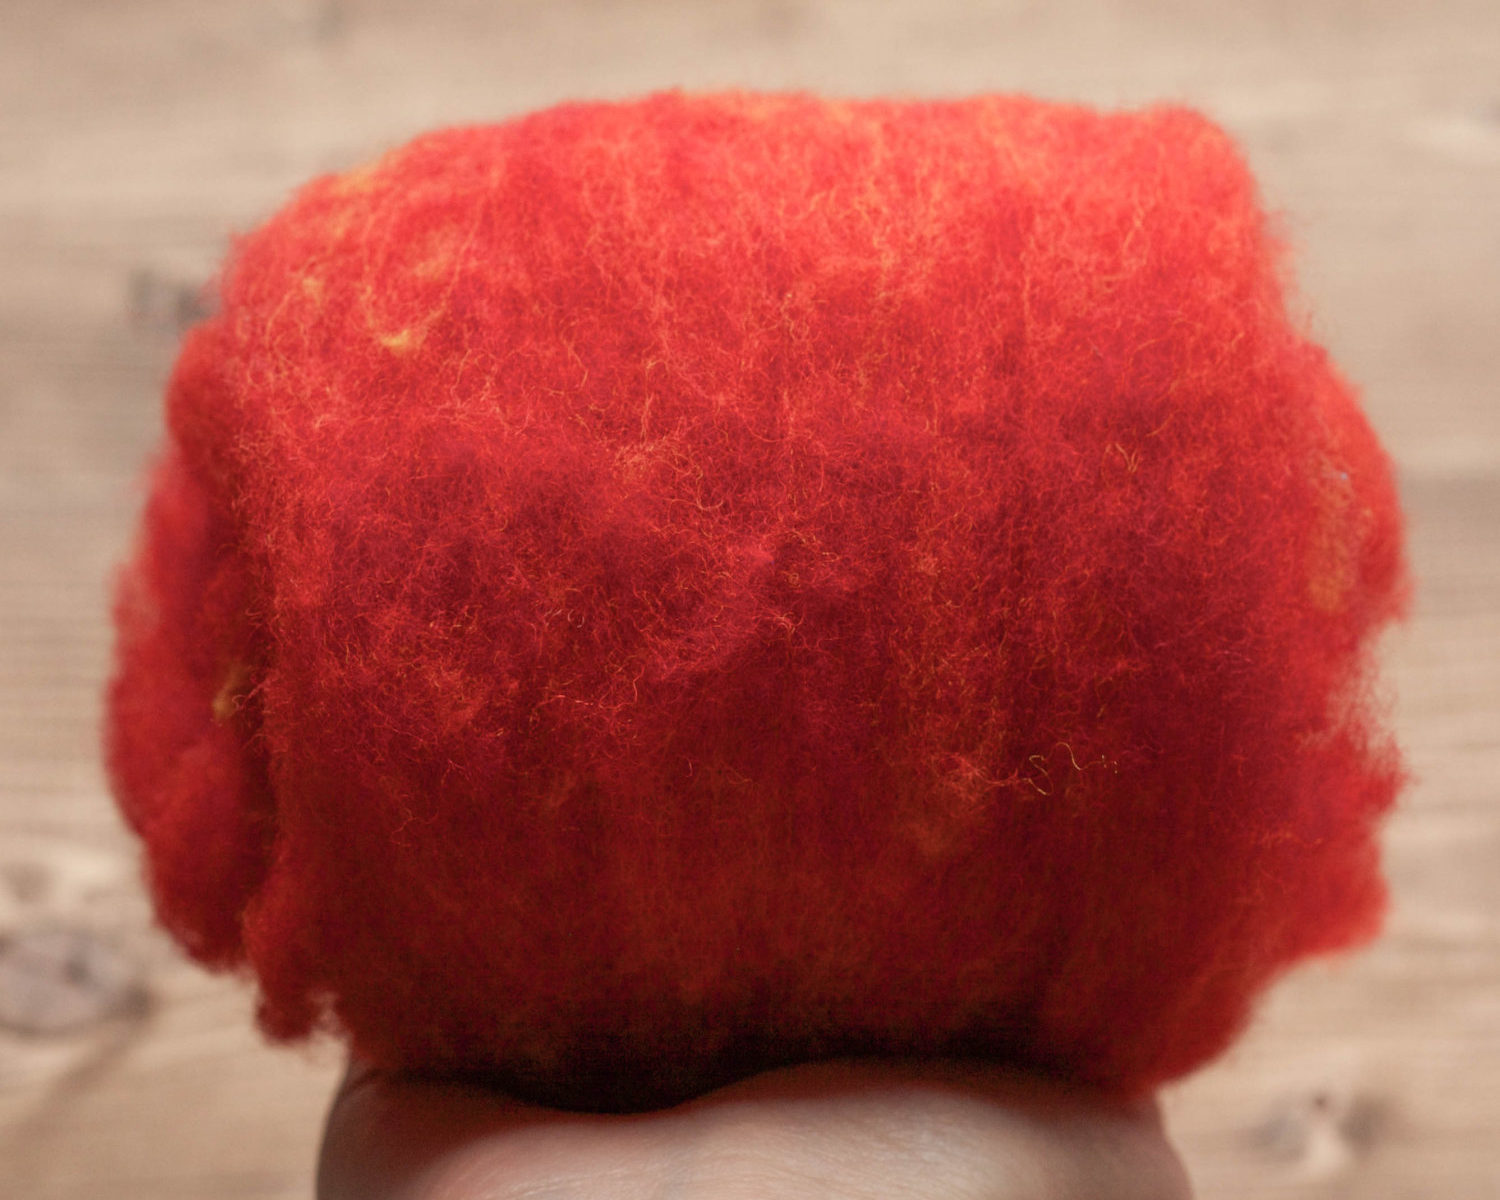 Cardinal Red Needle Felting Wool, Wool Batting, Batts, Fleece, Wet Felting, Spinning, Dyed Felting Wool, Fiber Art Supplies